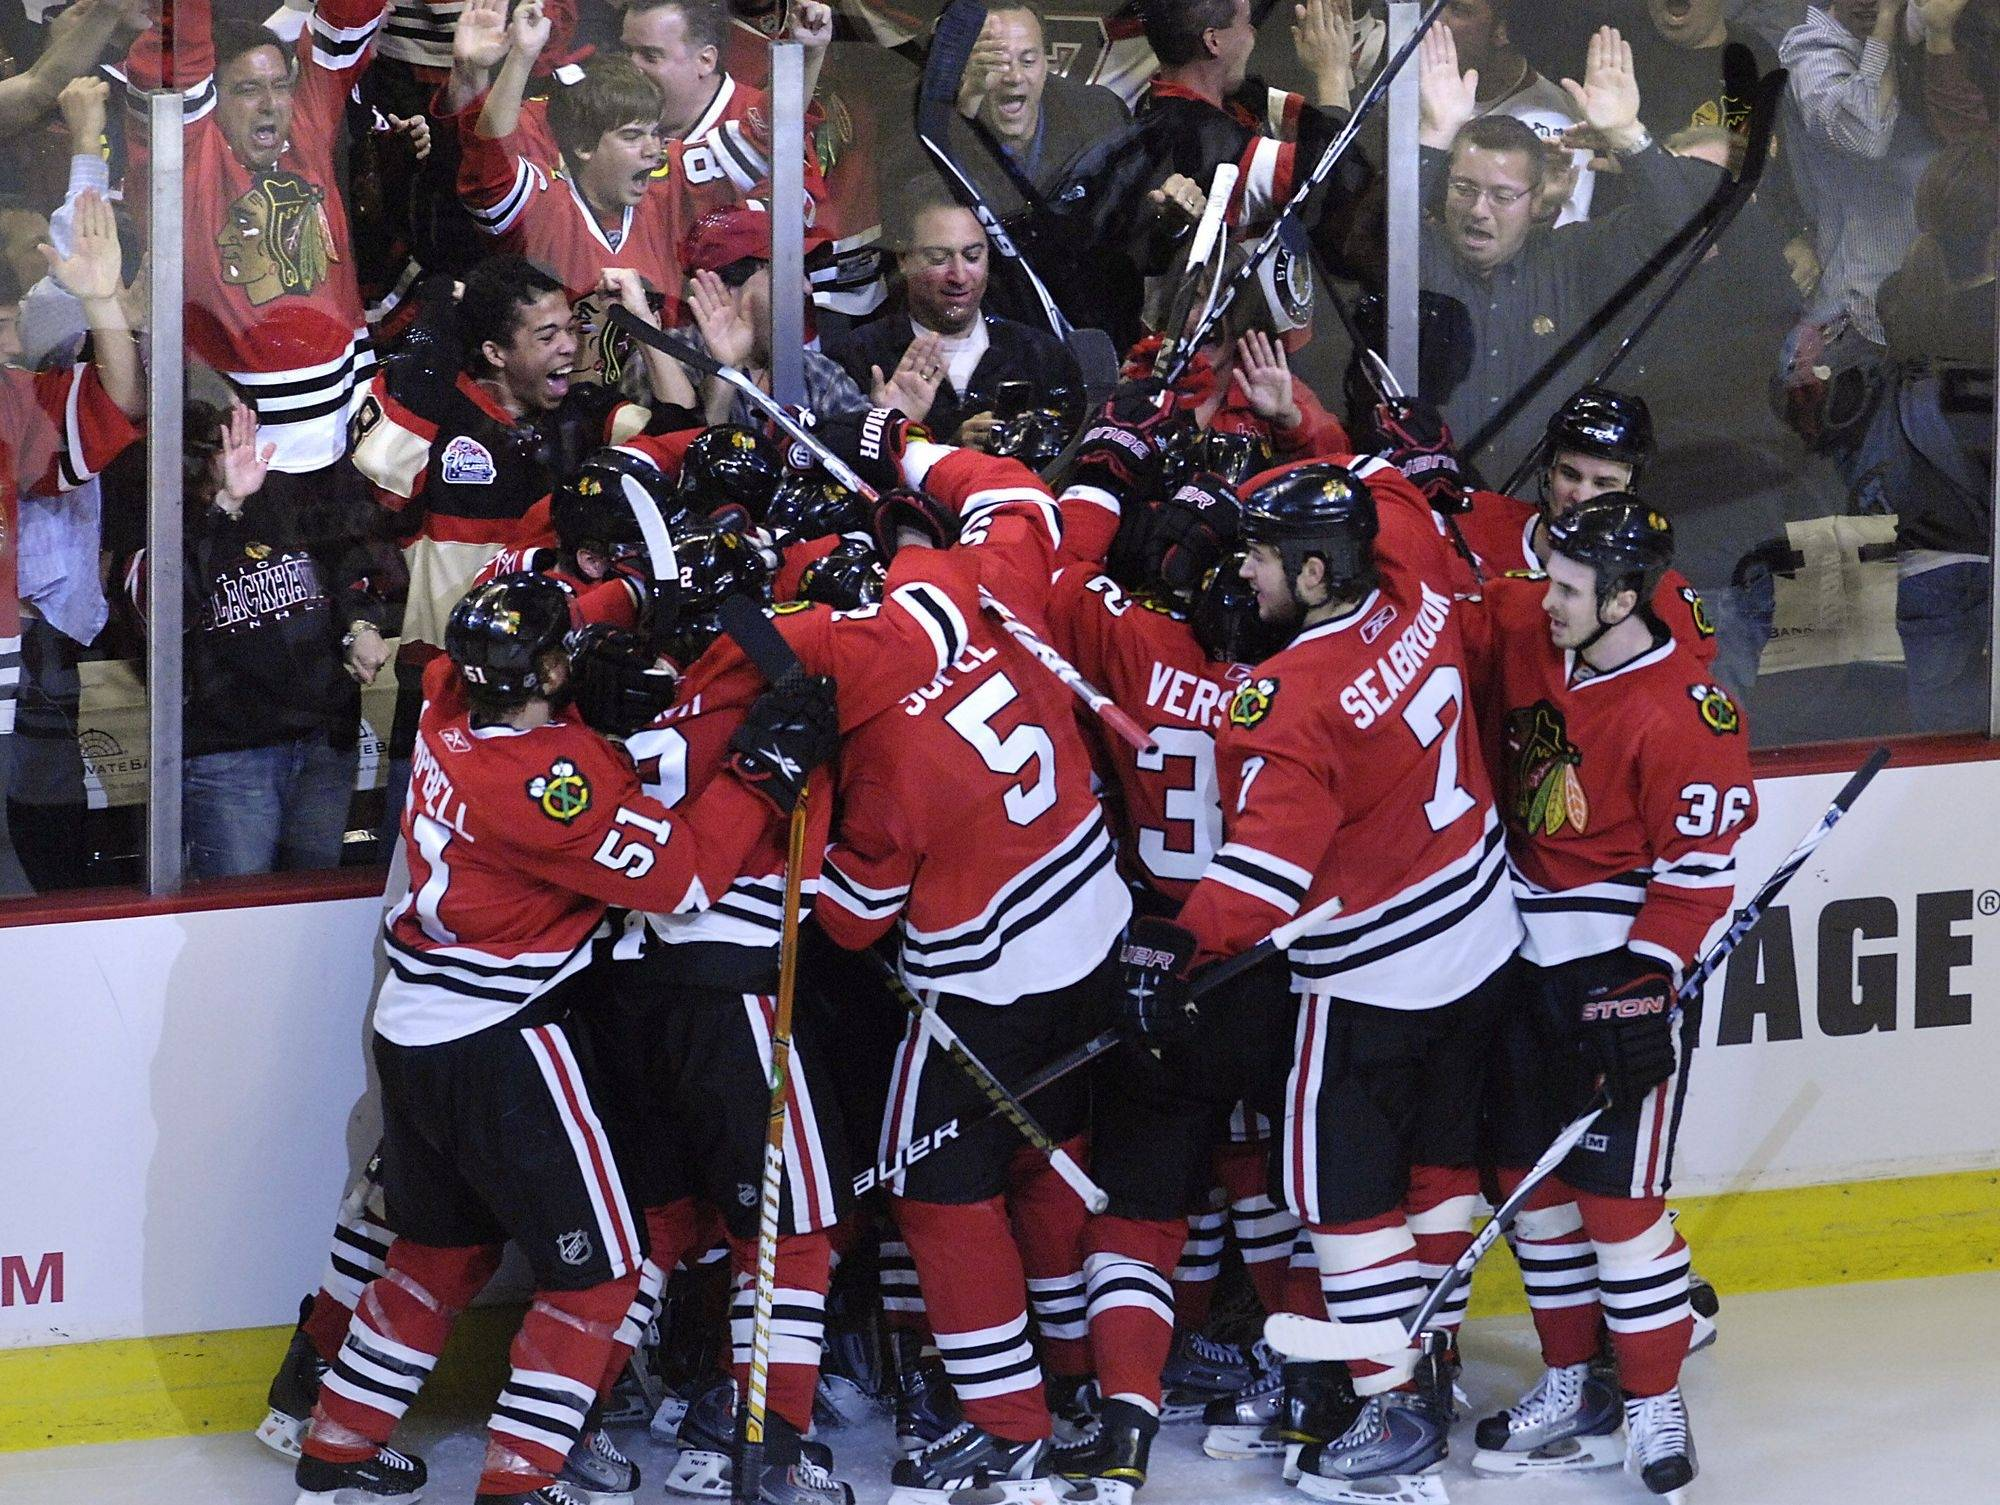 Chicago's Marian Hossa is overcome by his teammates after he scored the game-winning overtime goal against the Nashville Predators Saturday at the United Center in Game 5 of the first-round Stanley Cup playoff series.